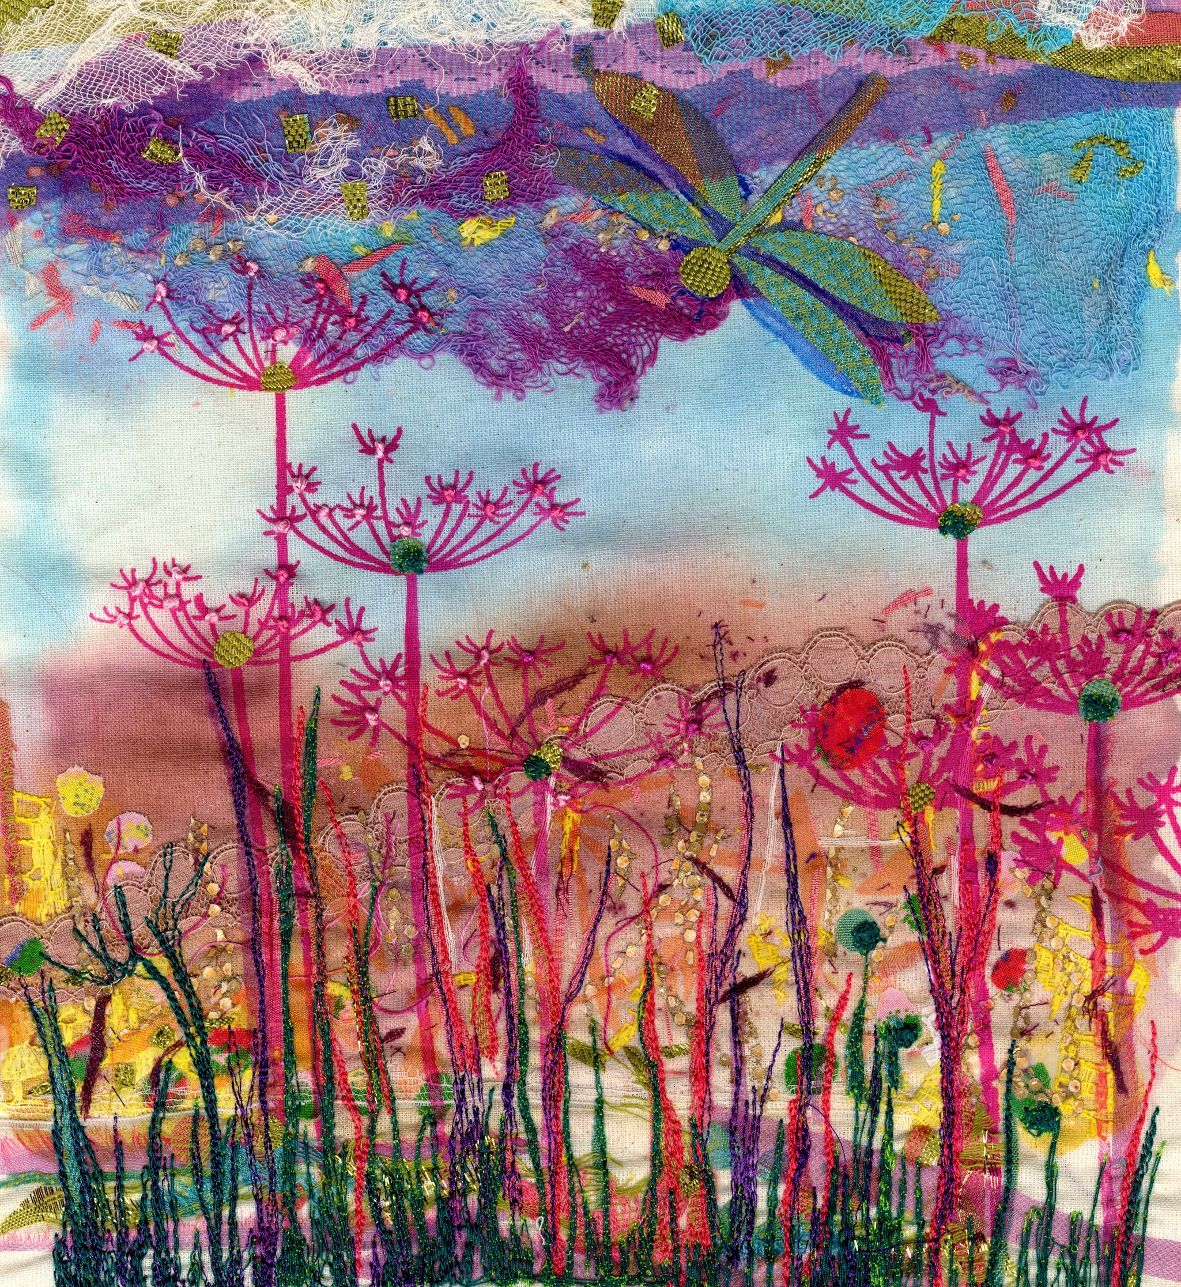 Allendale Forge Studios Textile Mixed Media And Glass